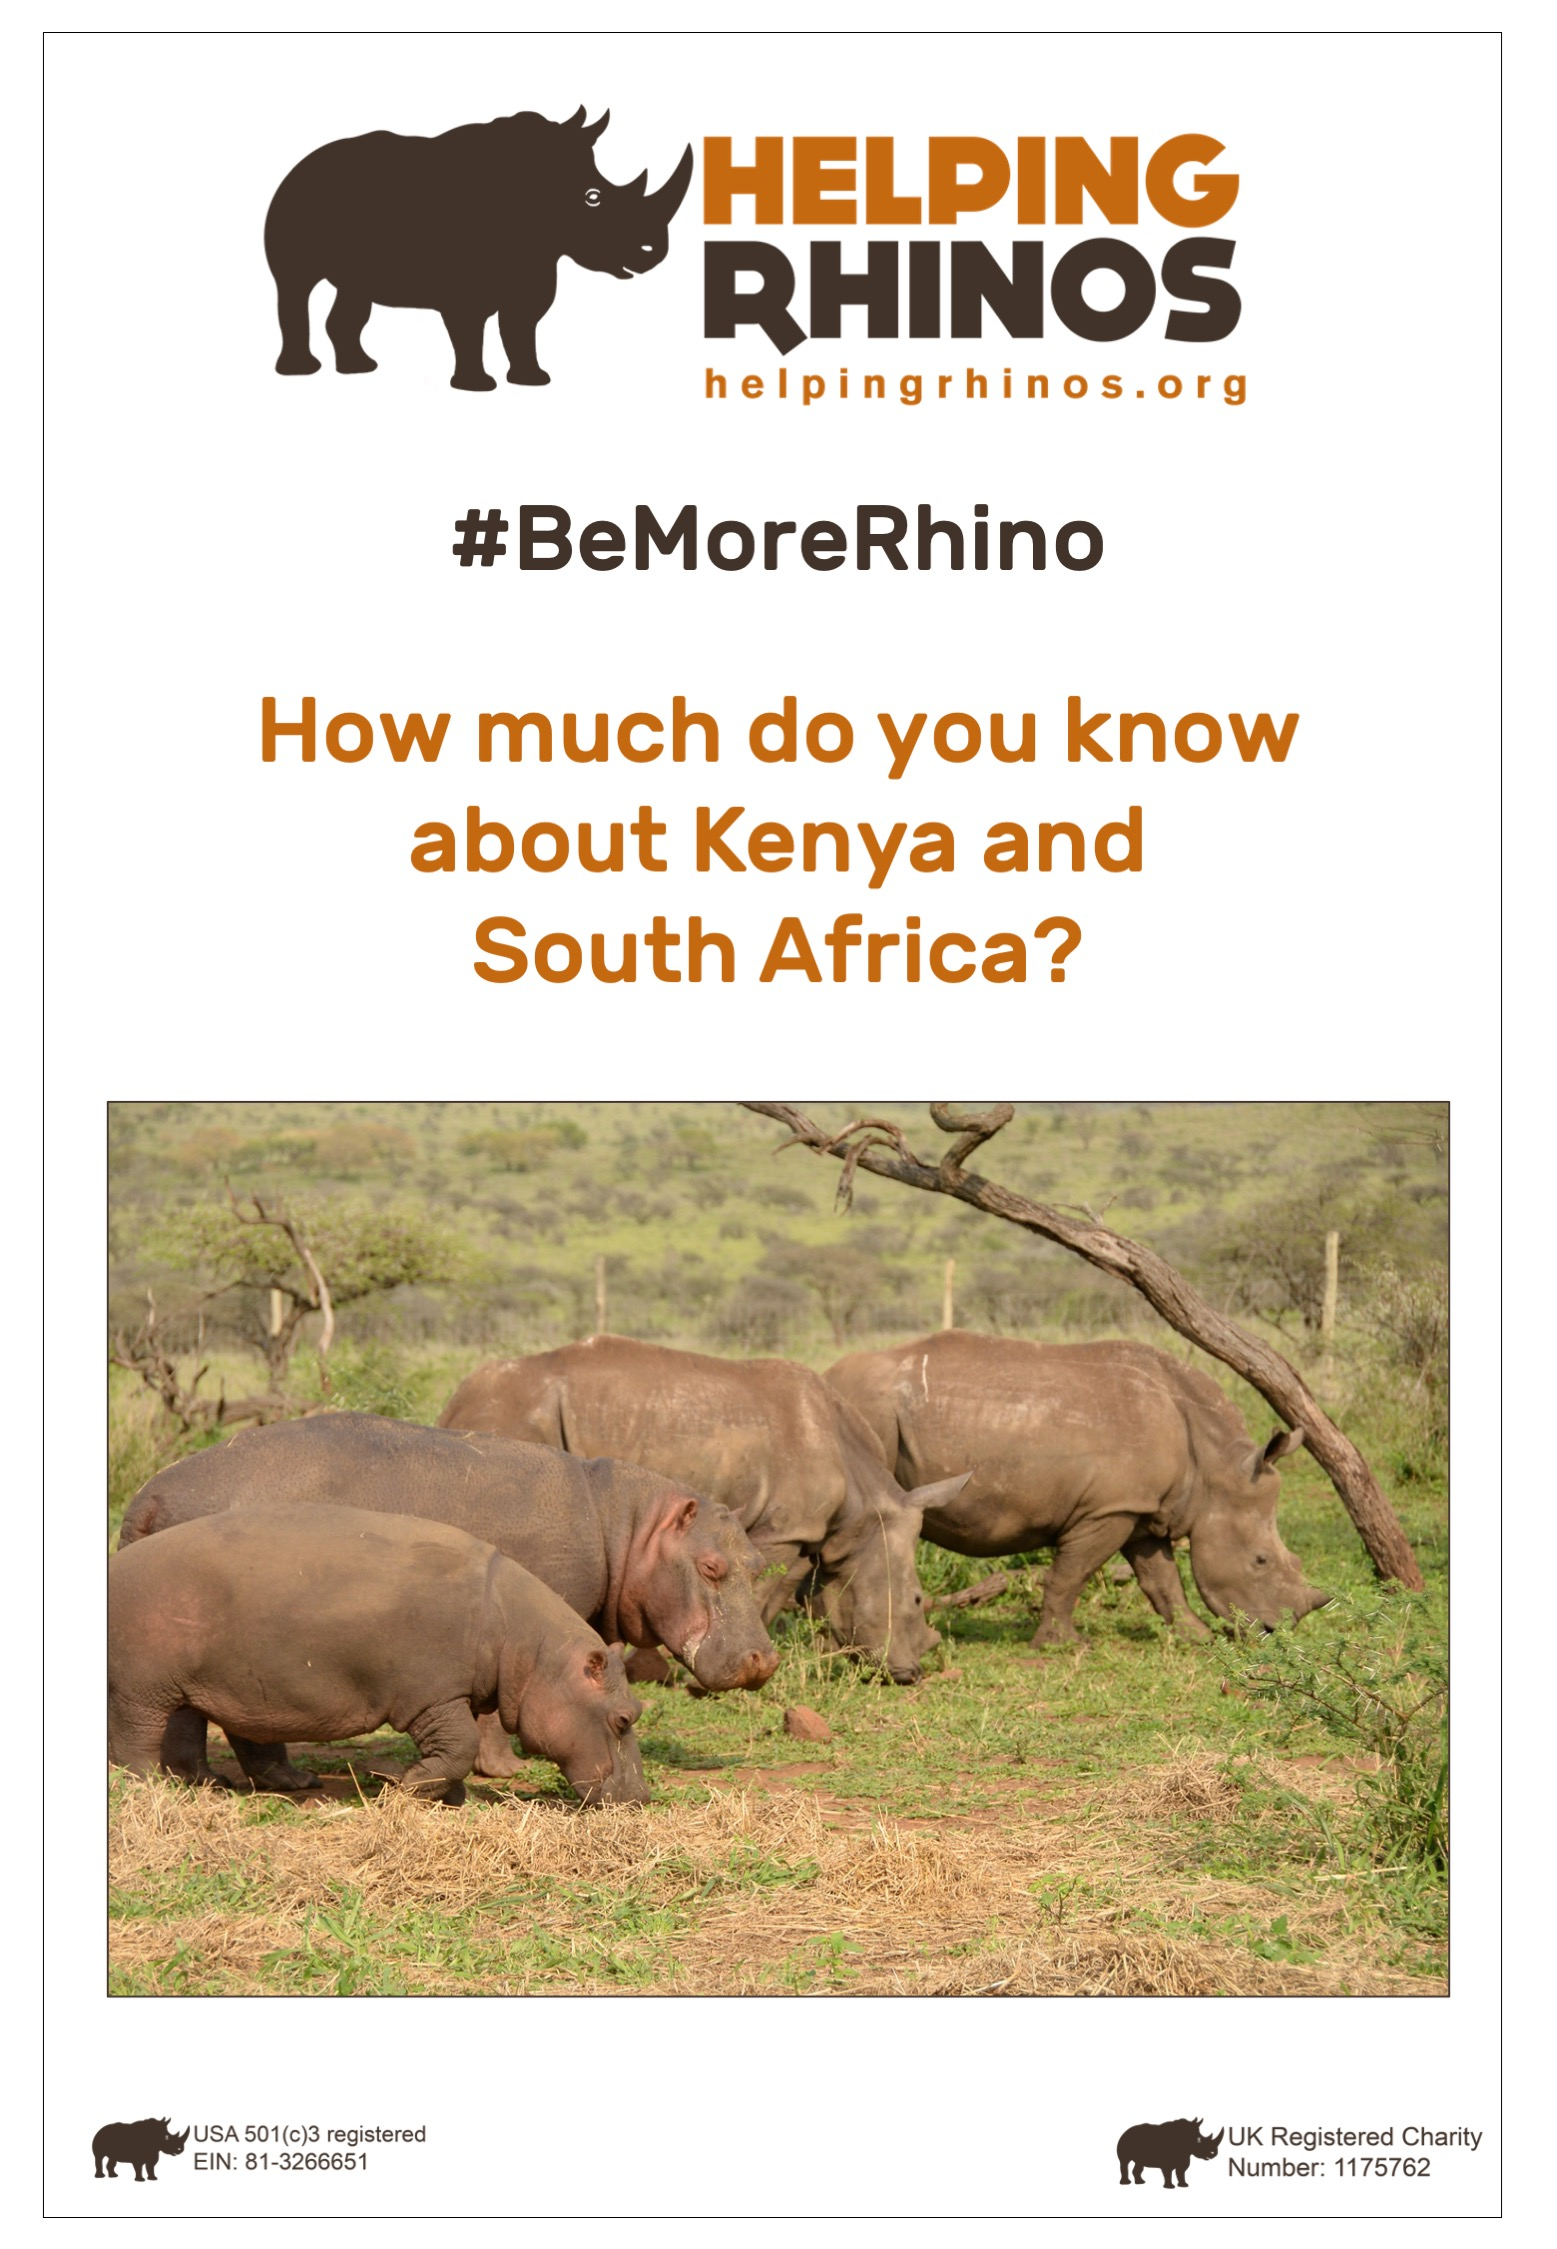 kenya-and-south-africa-fun-facts